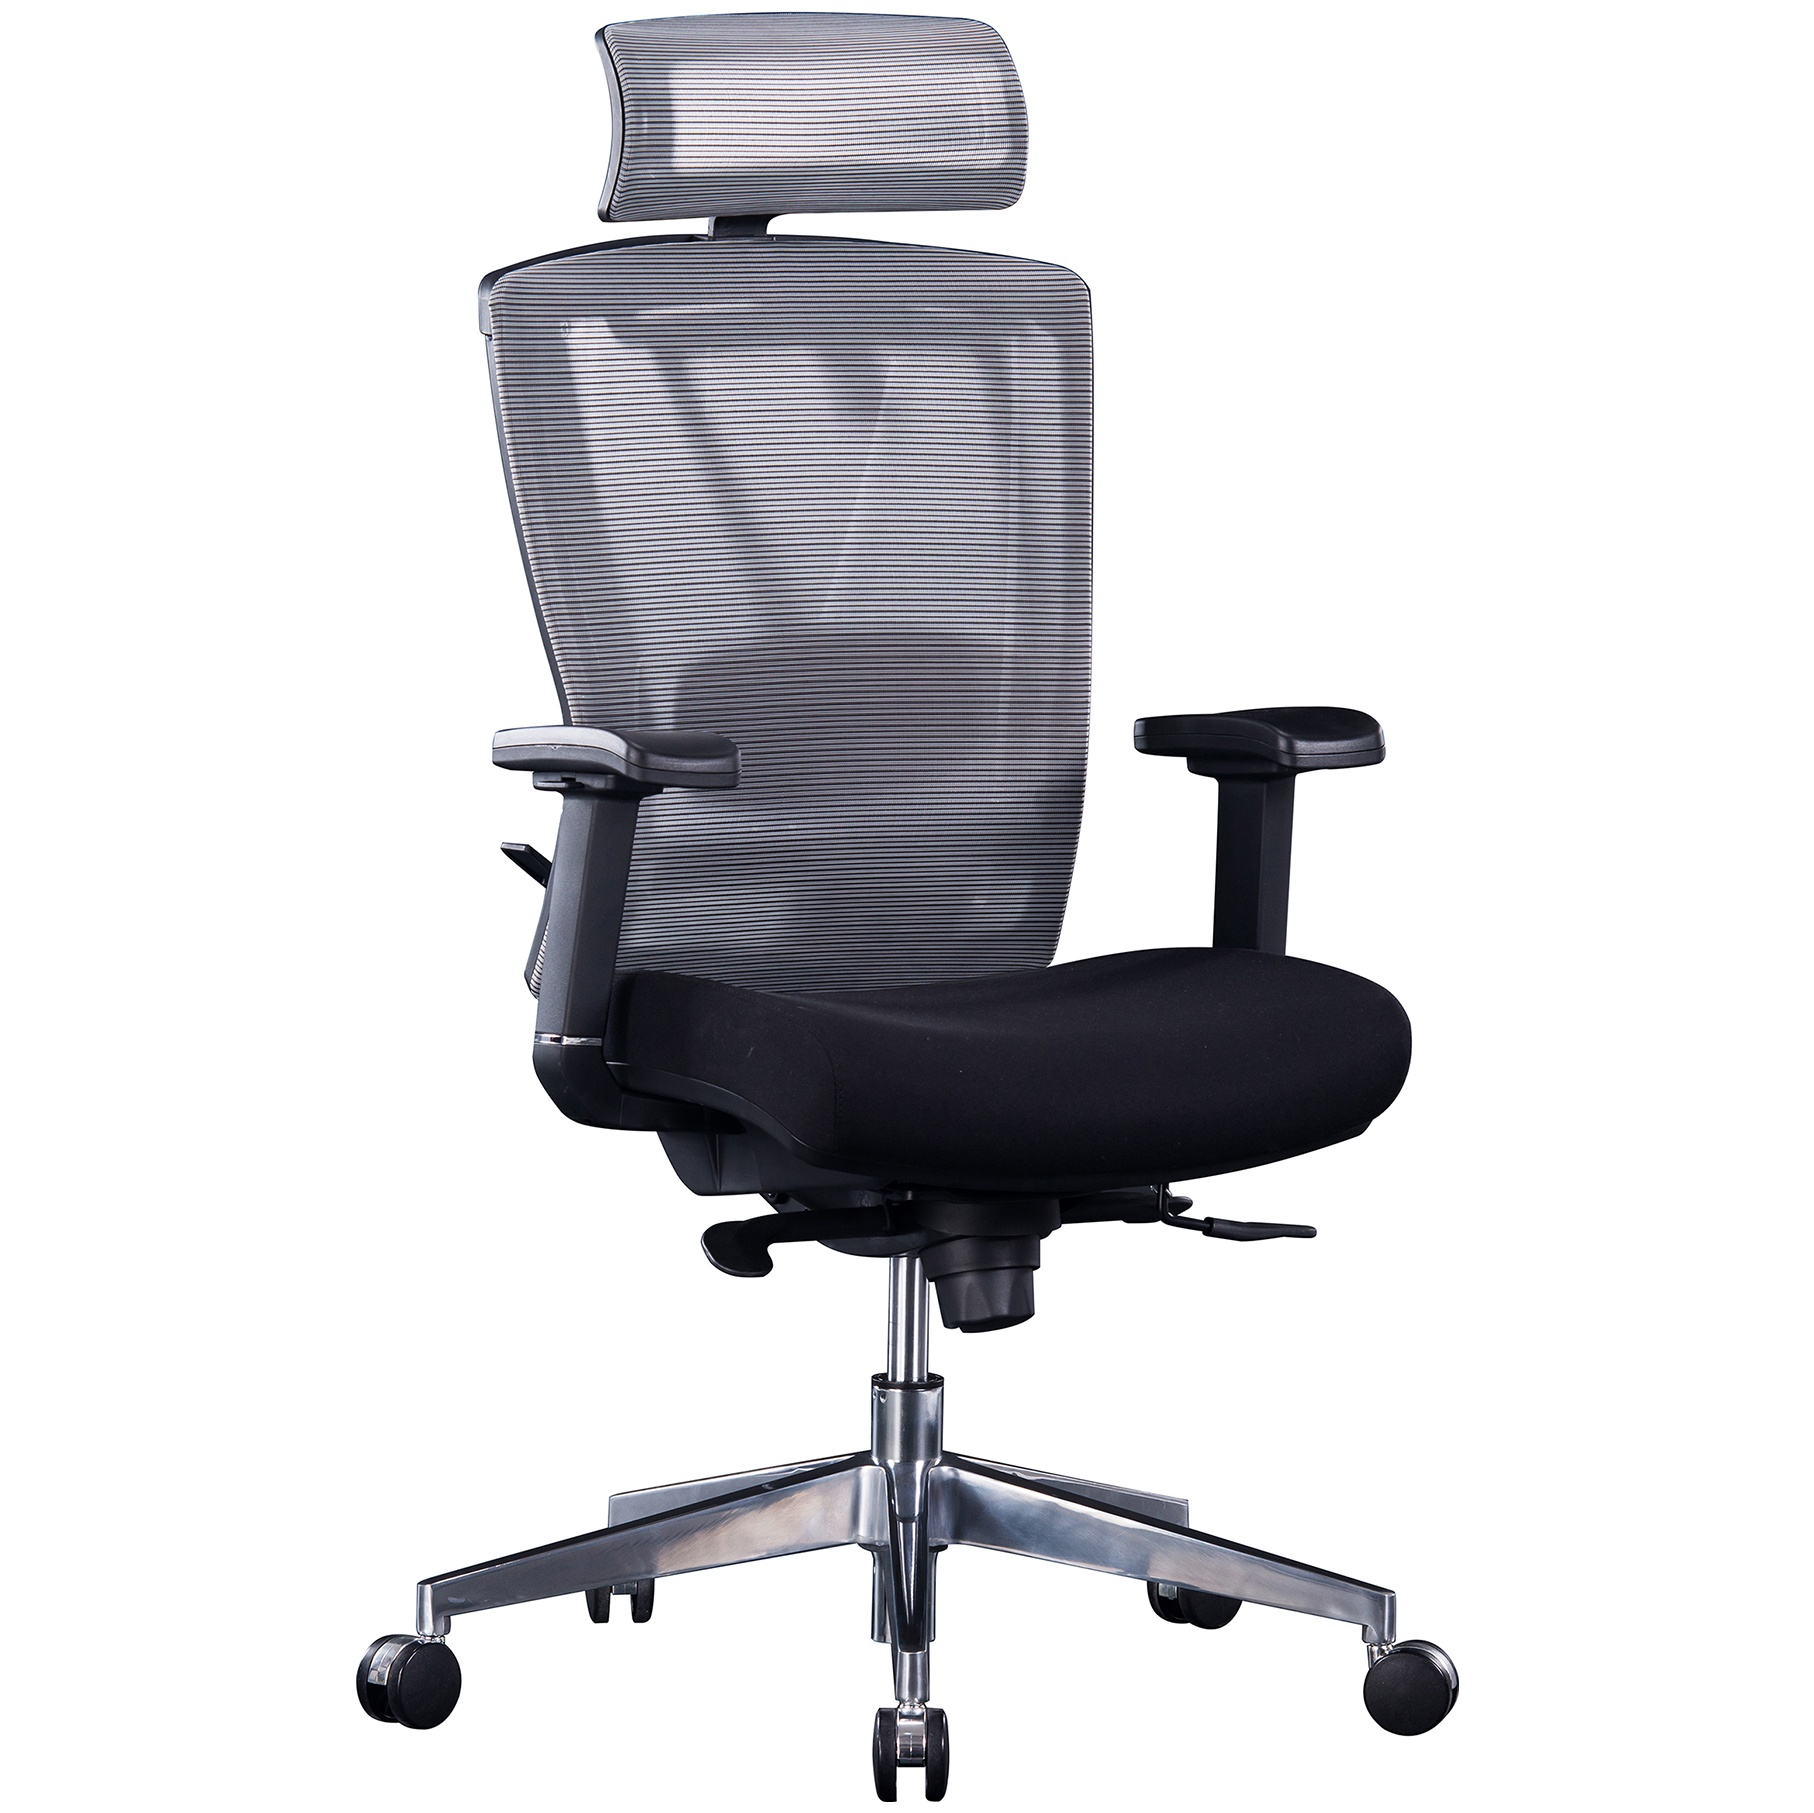 Contract 24 7 Posture Mesh Office Chairs 24 Hour Office Chairs